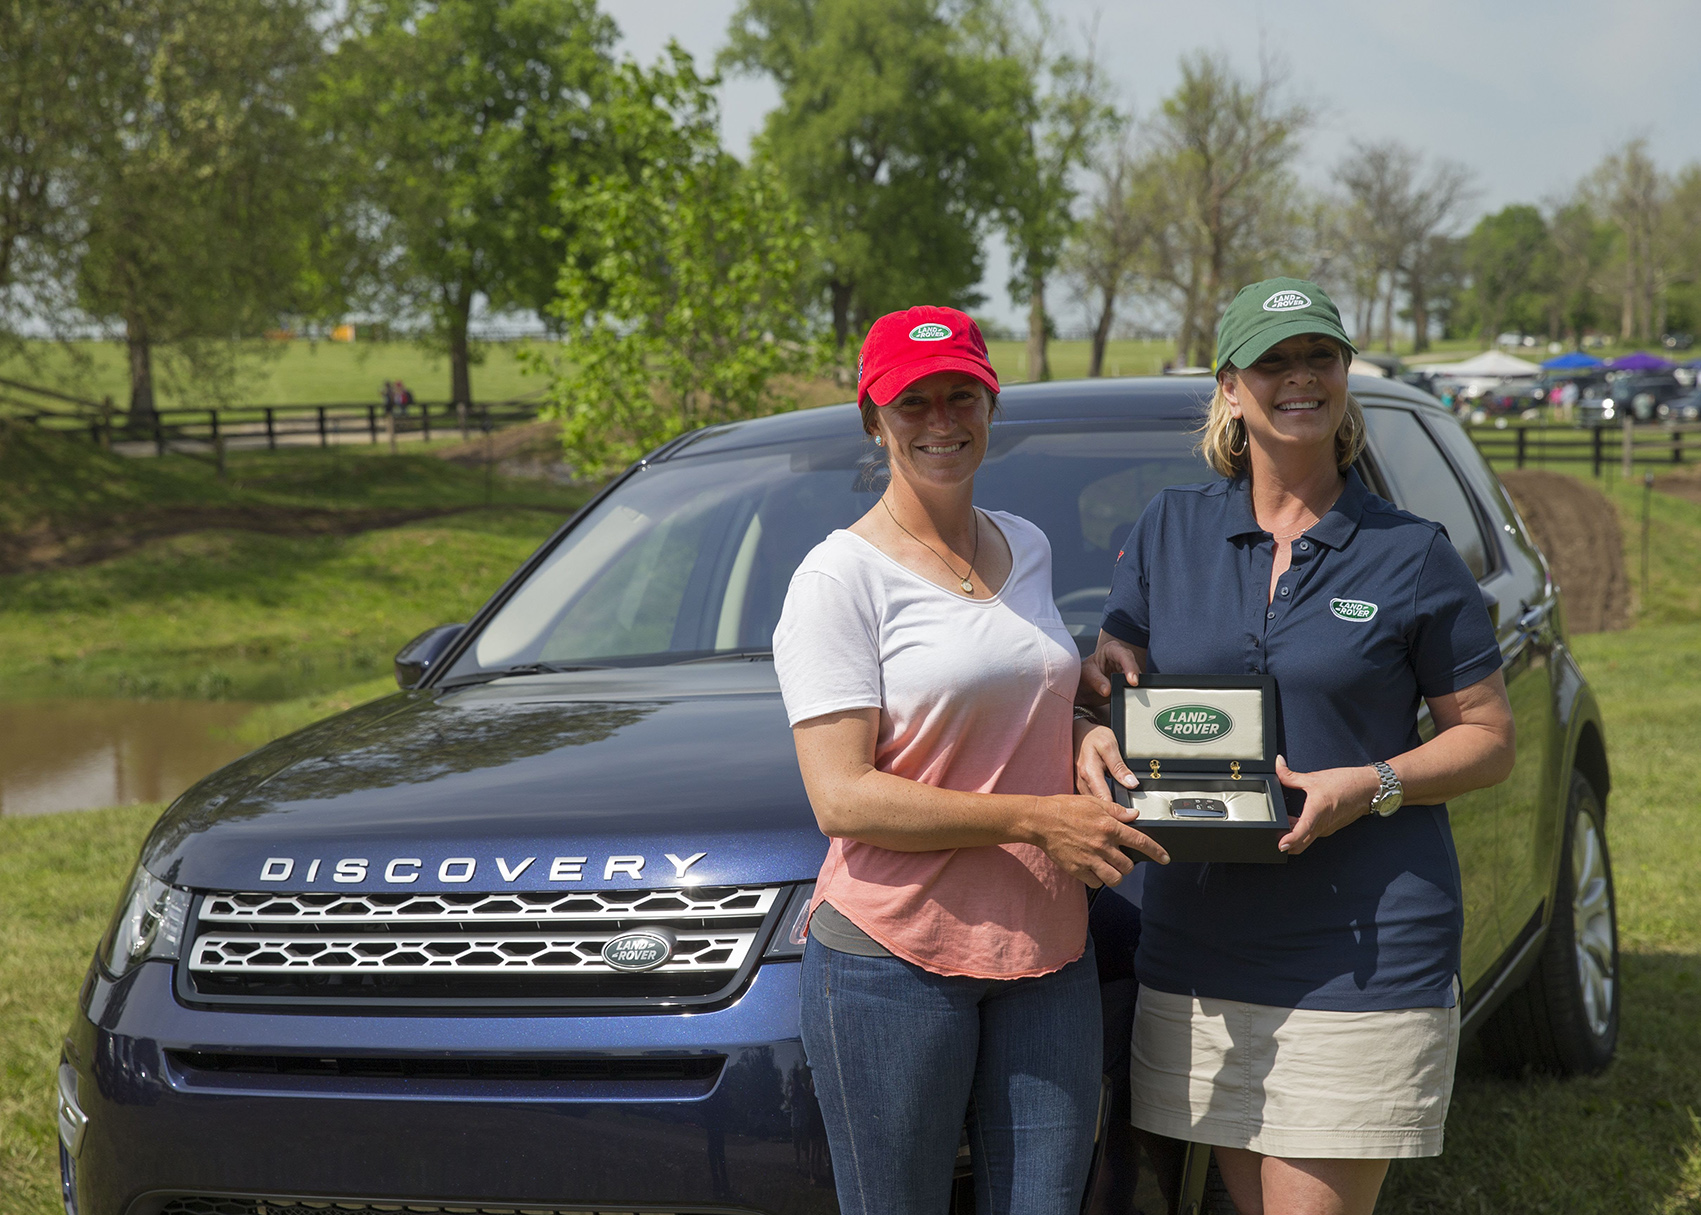 Horse Times Egypt: Equestrian Magazine :News :ERIN SYLVESTER AWARDED LAND ROVER DISCOVERY SPORT FOLLOWING